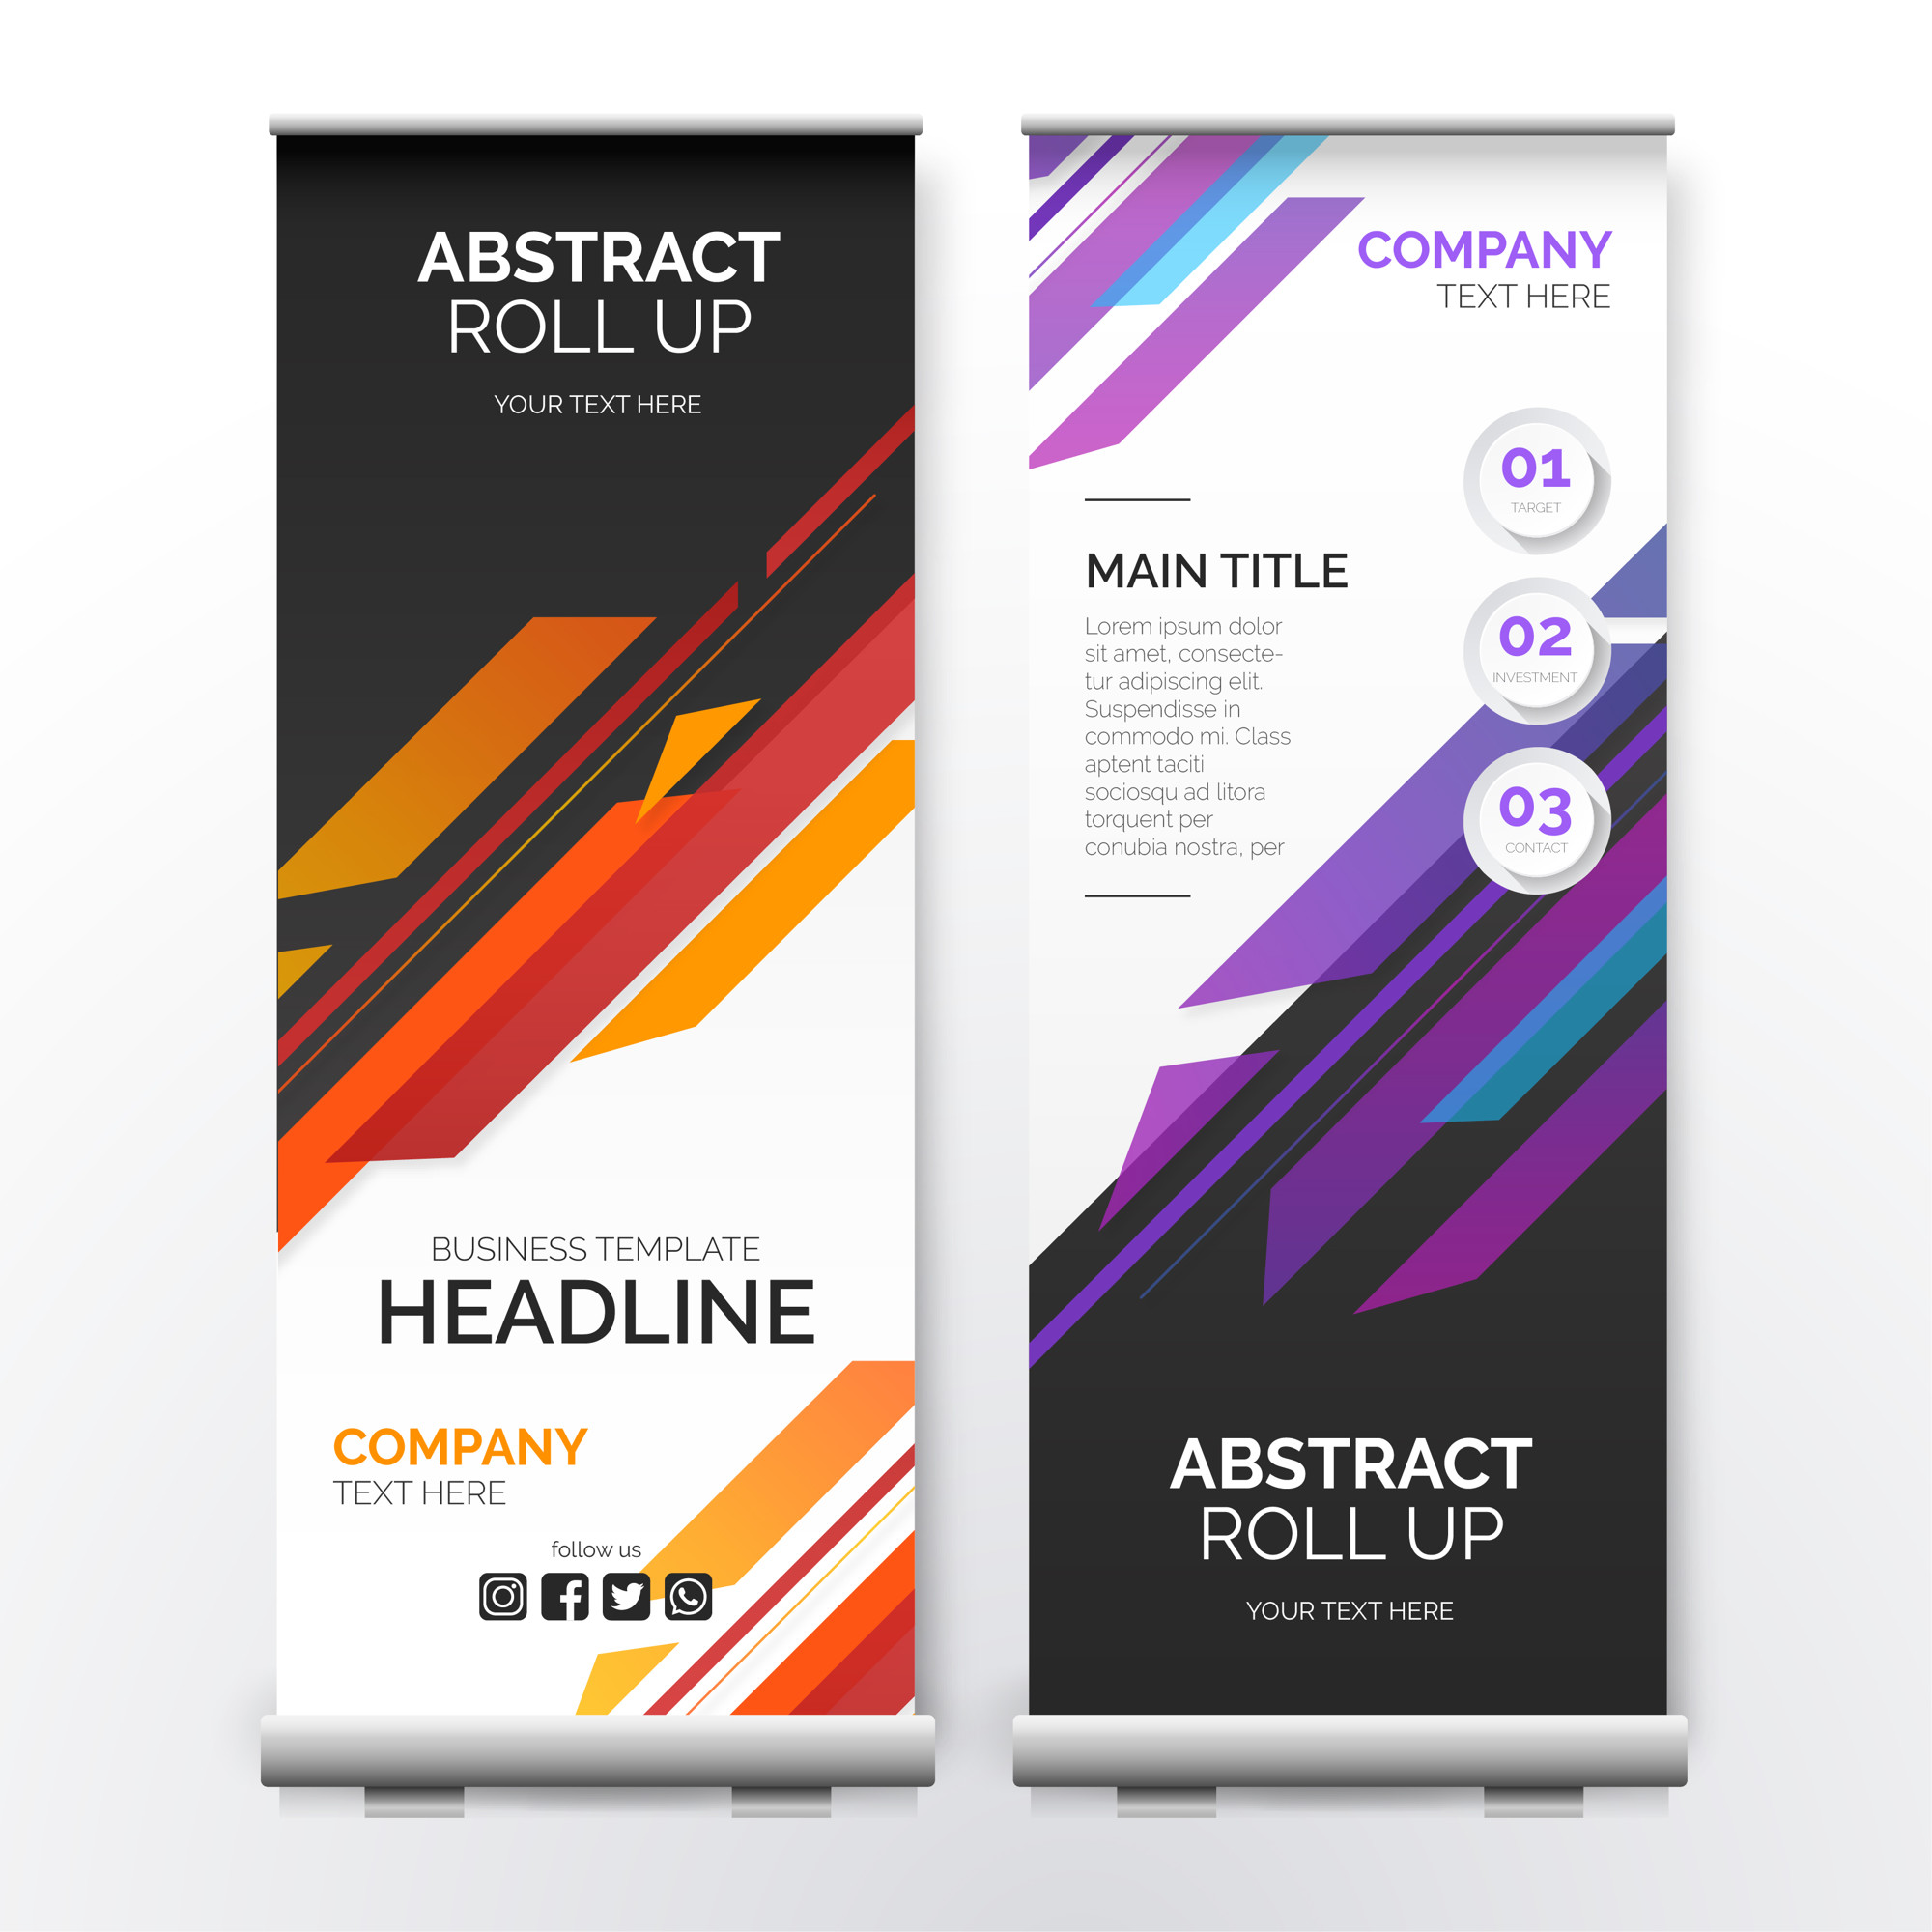 Roll up Banner with Modern Shapes